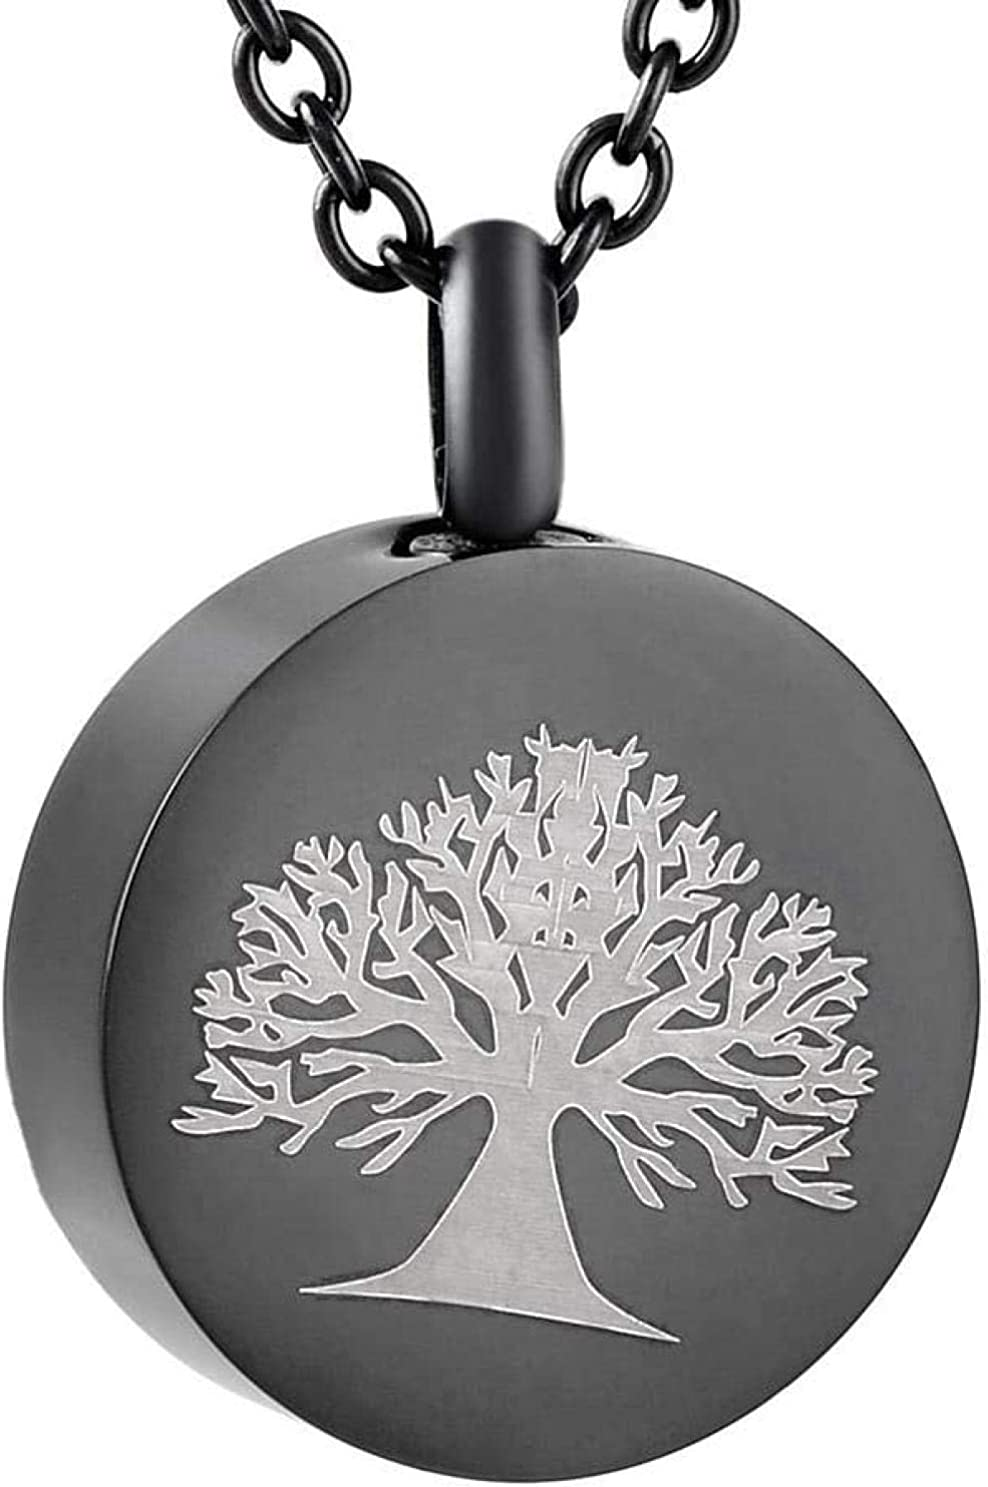 Ashes Memorial Ashes Chain Ashes Necklace Tree of Life Stainless Steel Ash Necklace Men/Pet Jewelry Memorial Jewelry Pendant